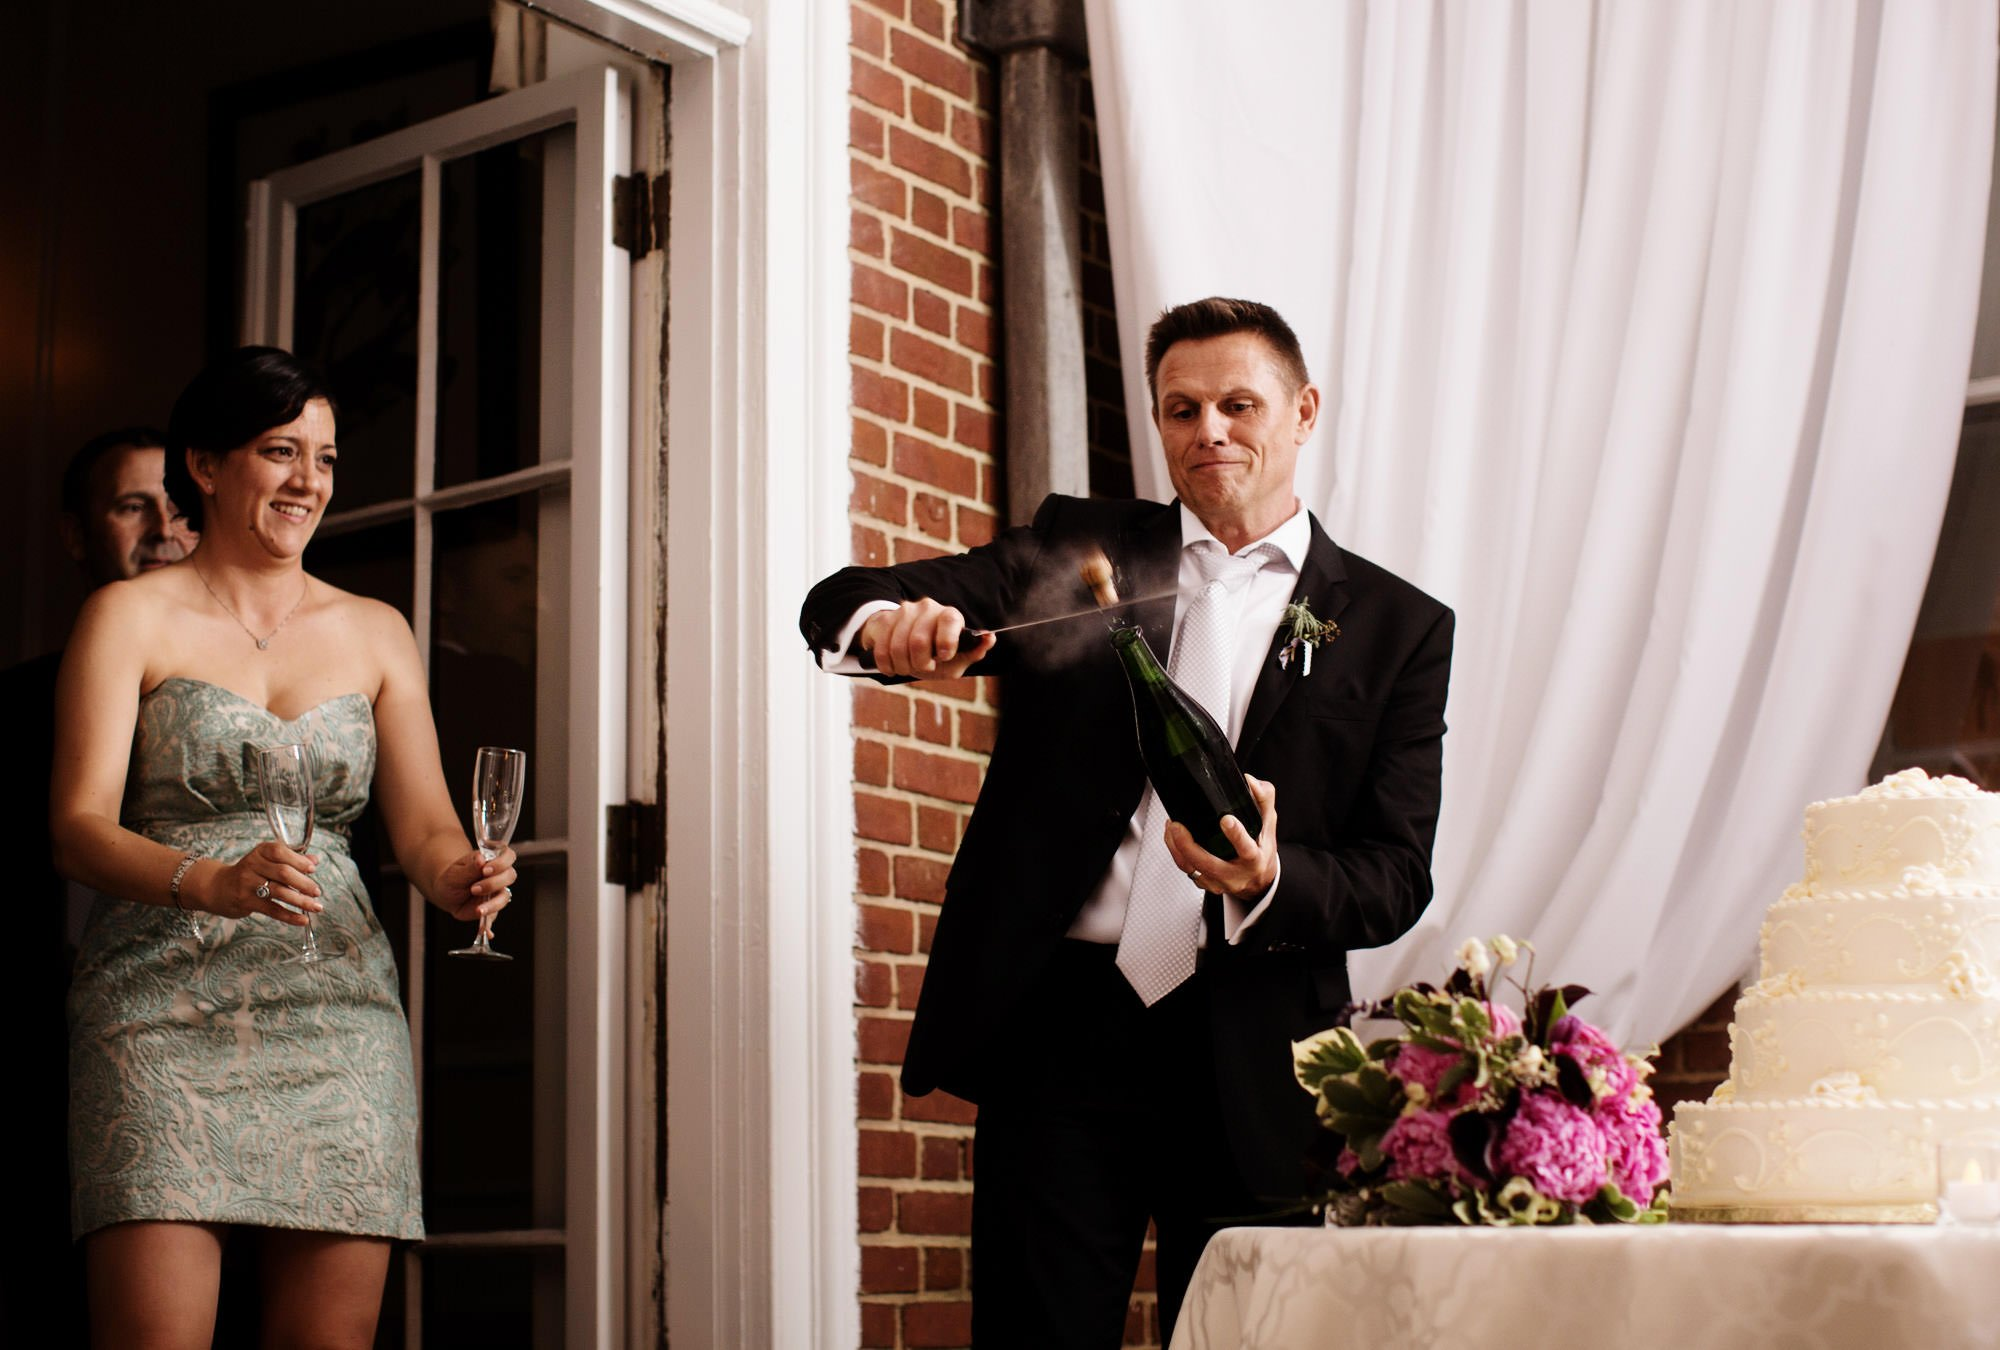 The groom pops the cork on a bottle of champaign during the wedding reception at Woodend Sanctuary.